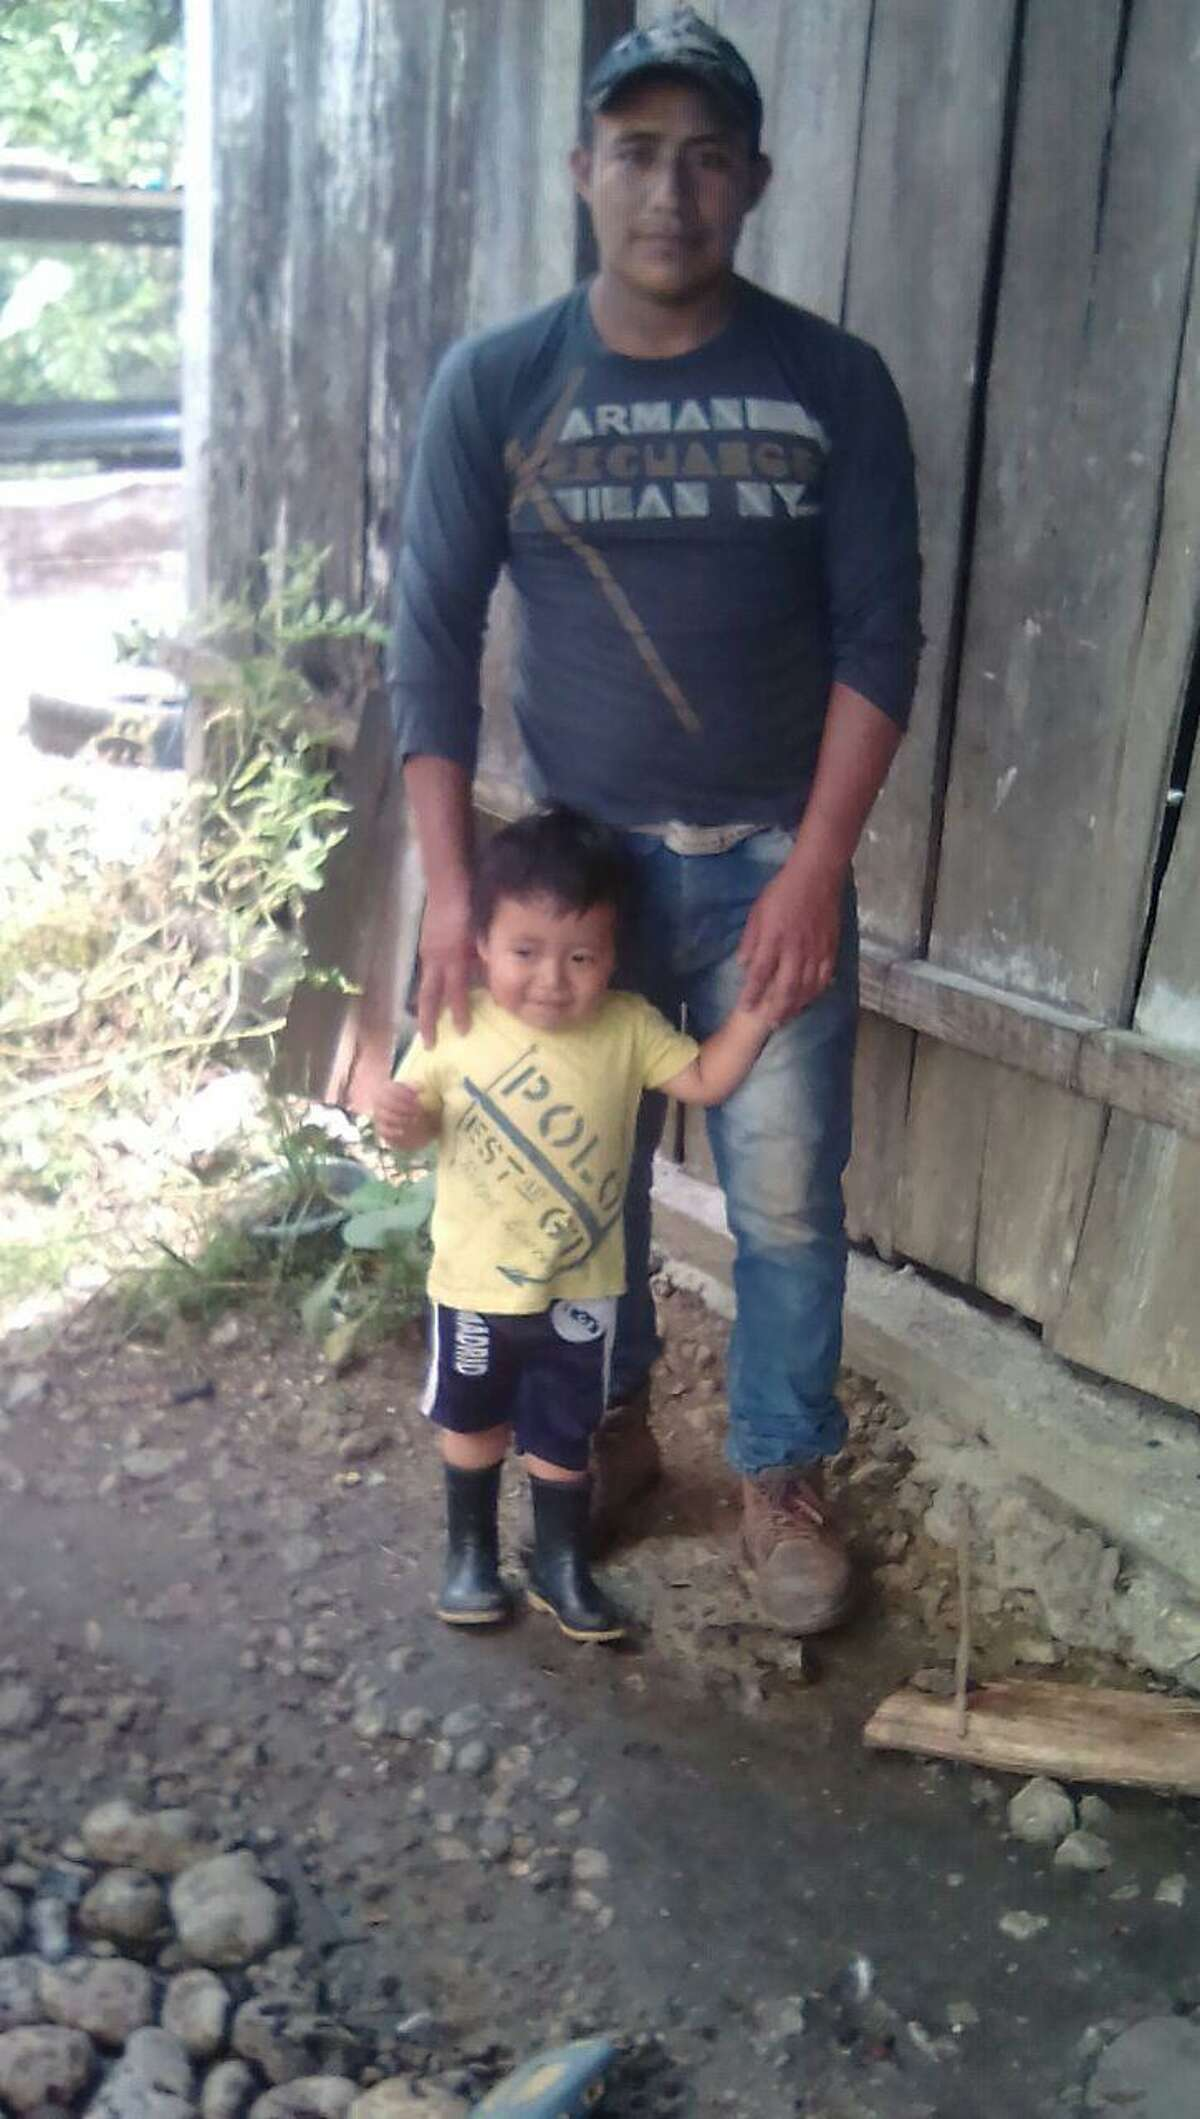 Esteban Pastor, 29, hoped Border Patrol agents would free him and his 18-month-old son while they fought their deportation case. Instead the father was imprisoned for crossing the border illegally and his toddler was placed in federal foster care. For months, Pastor said he didn?'t know what had happened to his son and he was deported to Guatemala without him last October.